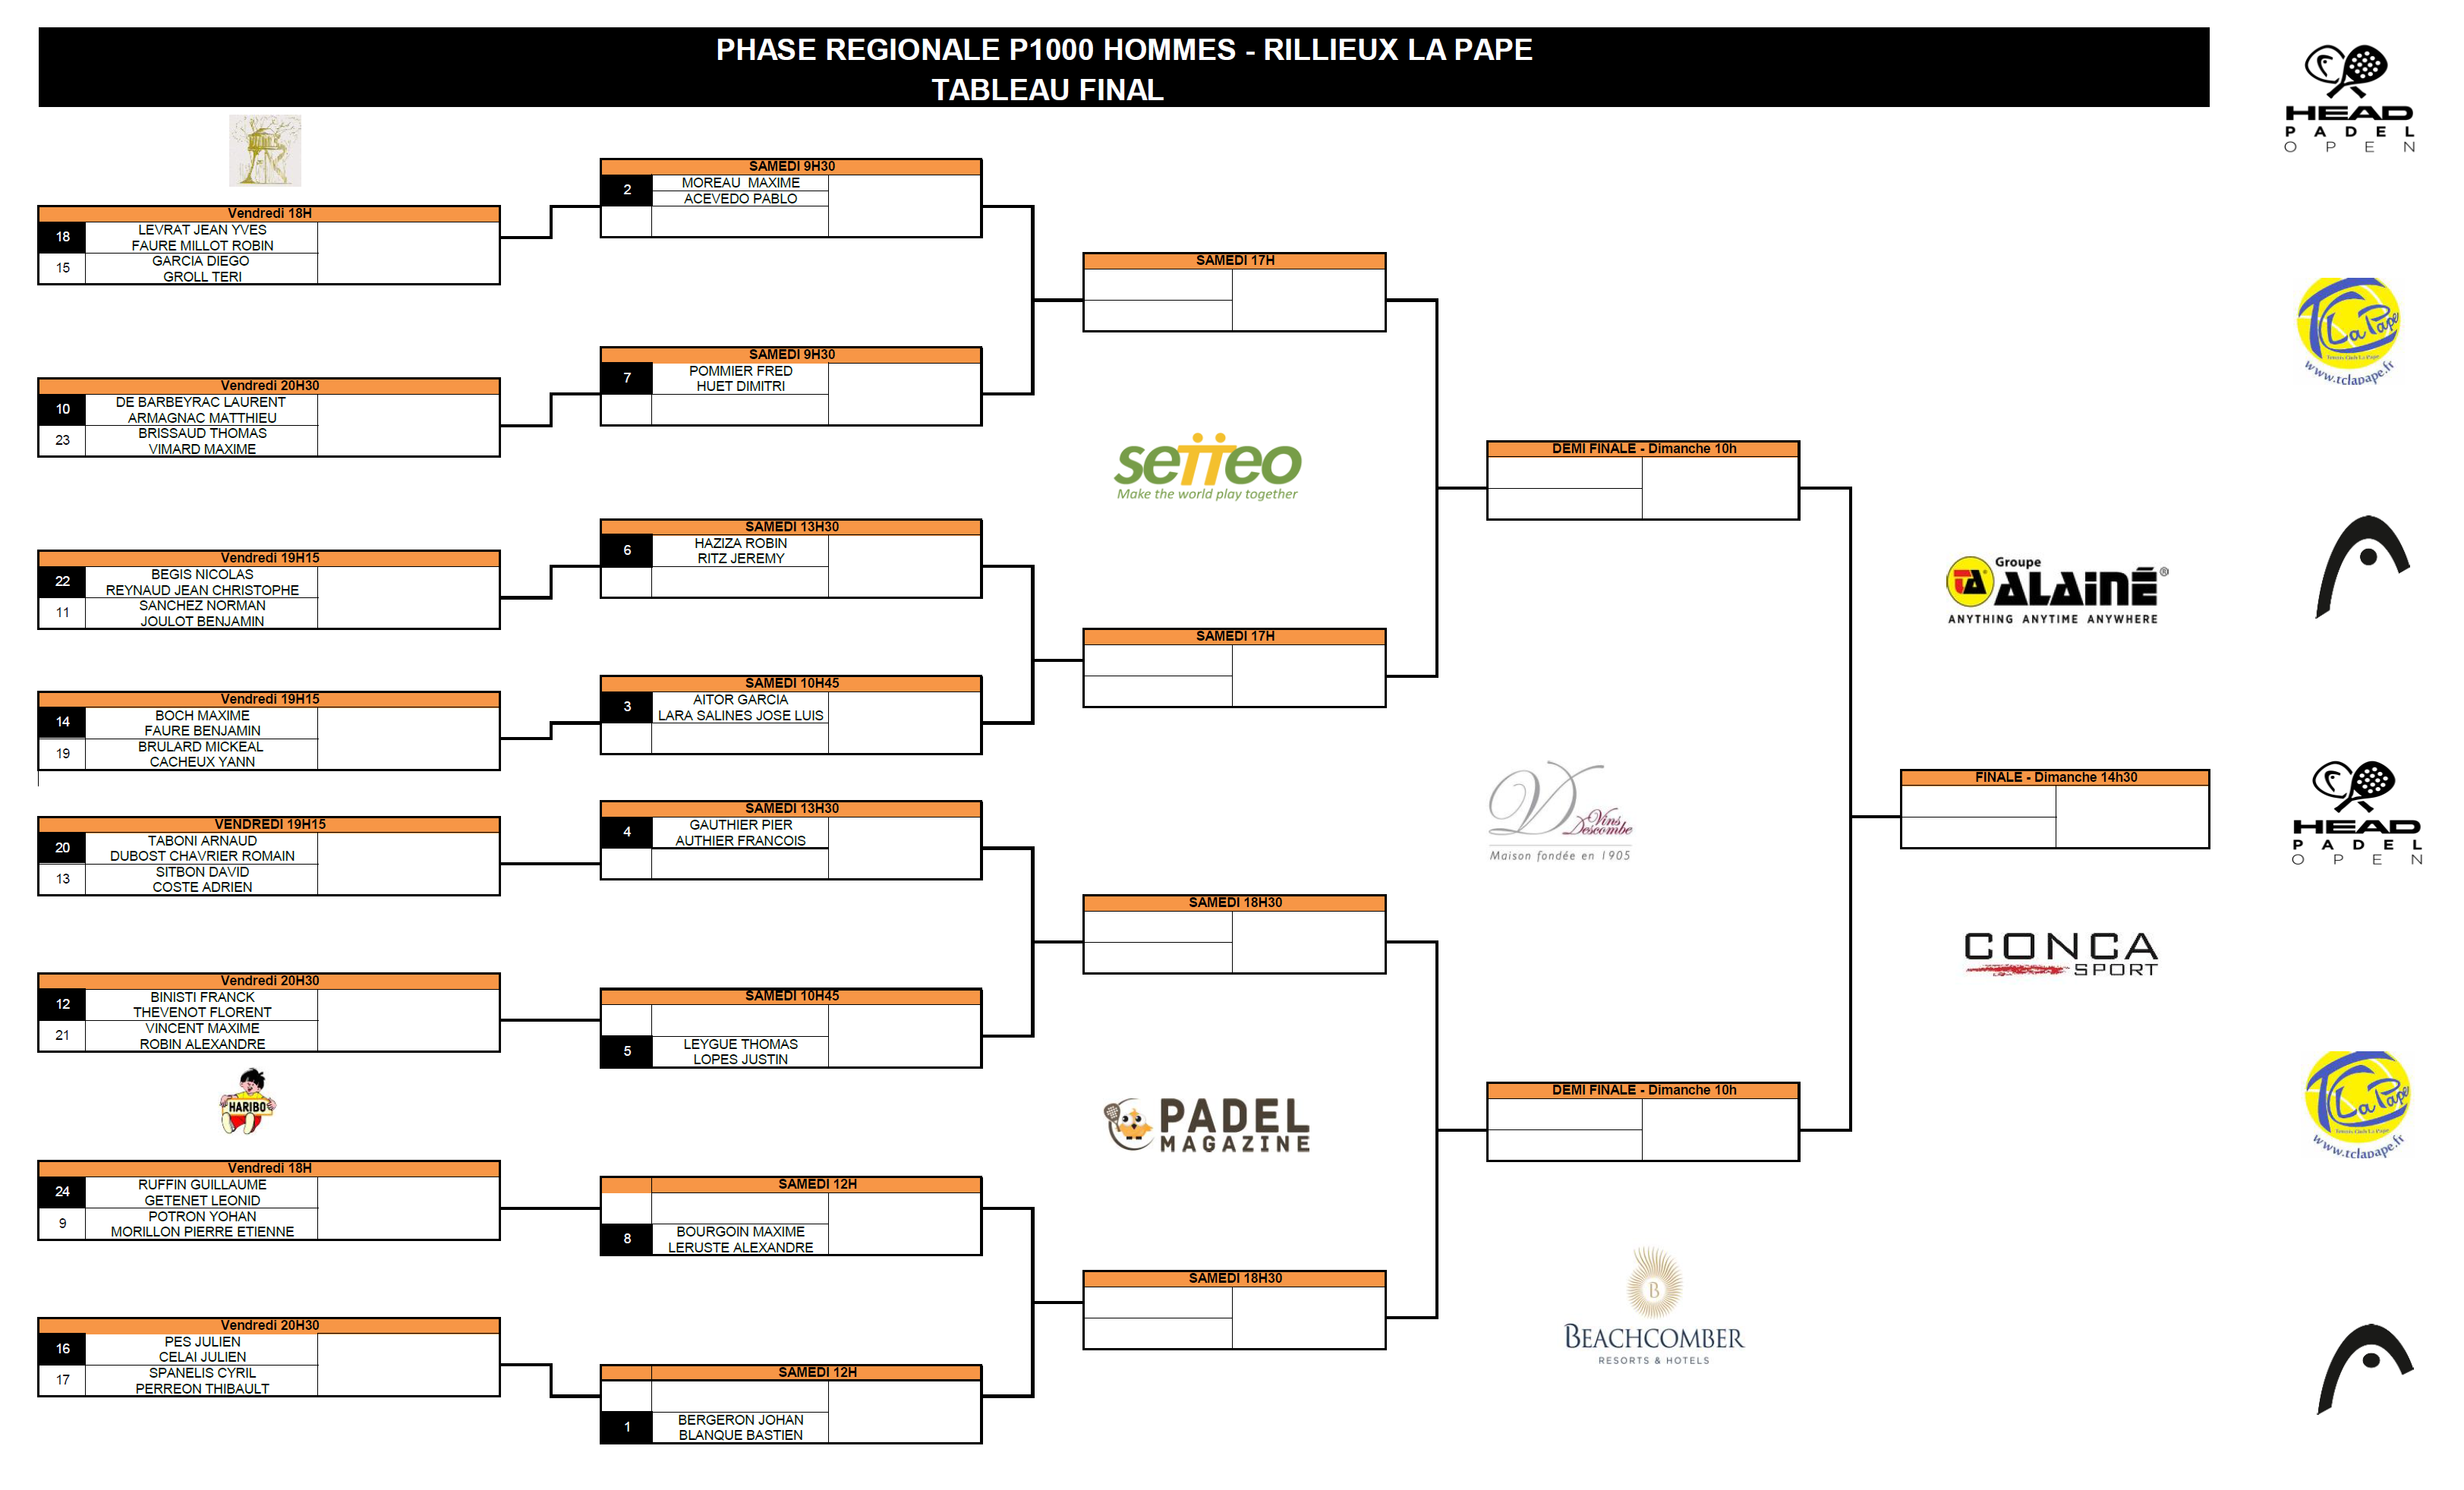 A very strong comeback at Head Padel Rillieux-la-Pape Open